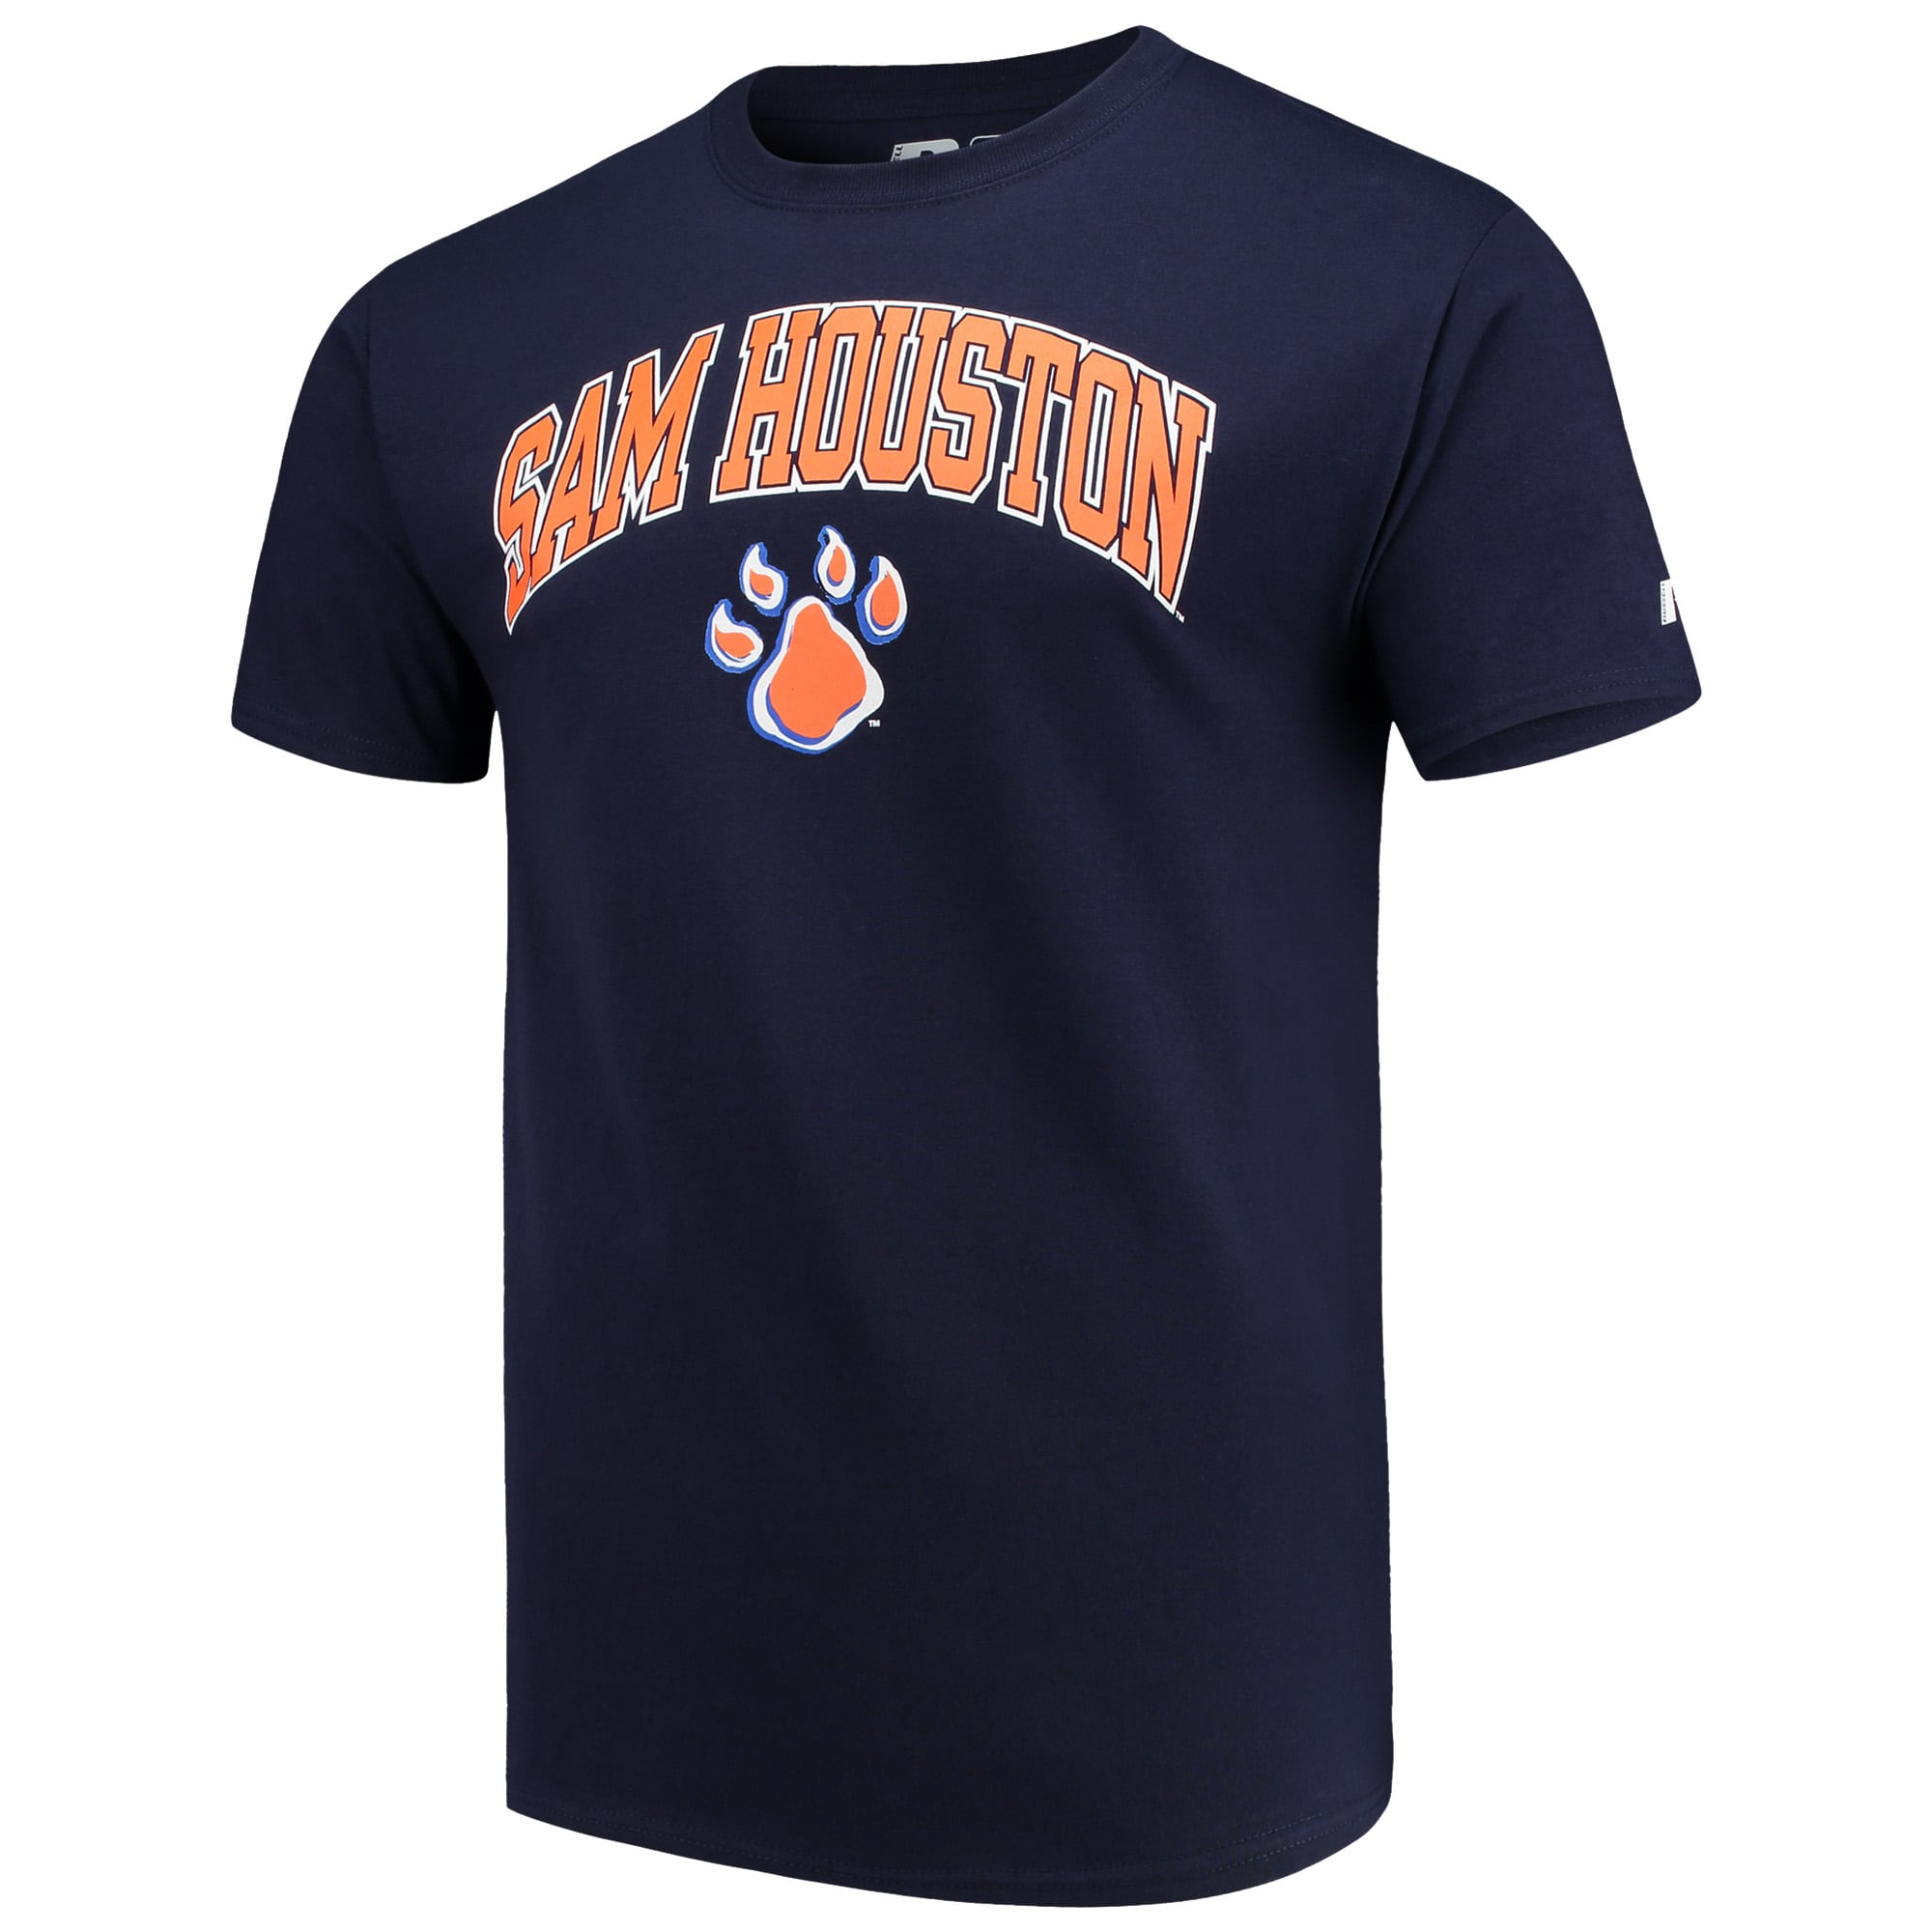 NCAA Sam Houston State Bearkats T-Shirt V3